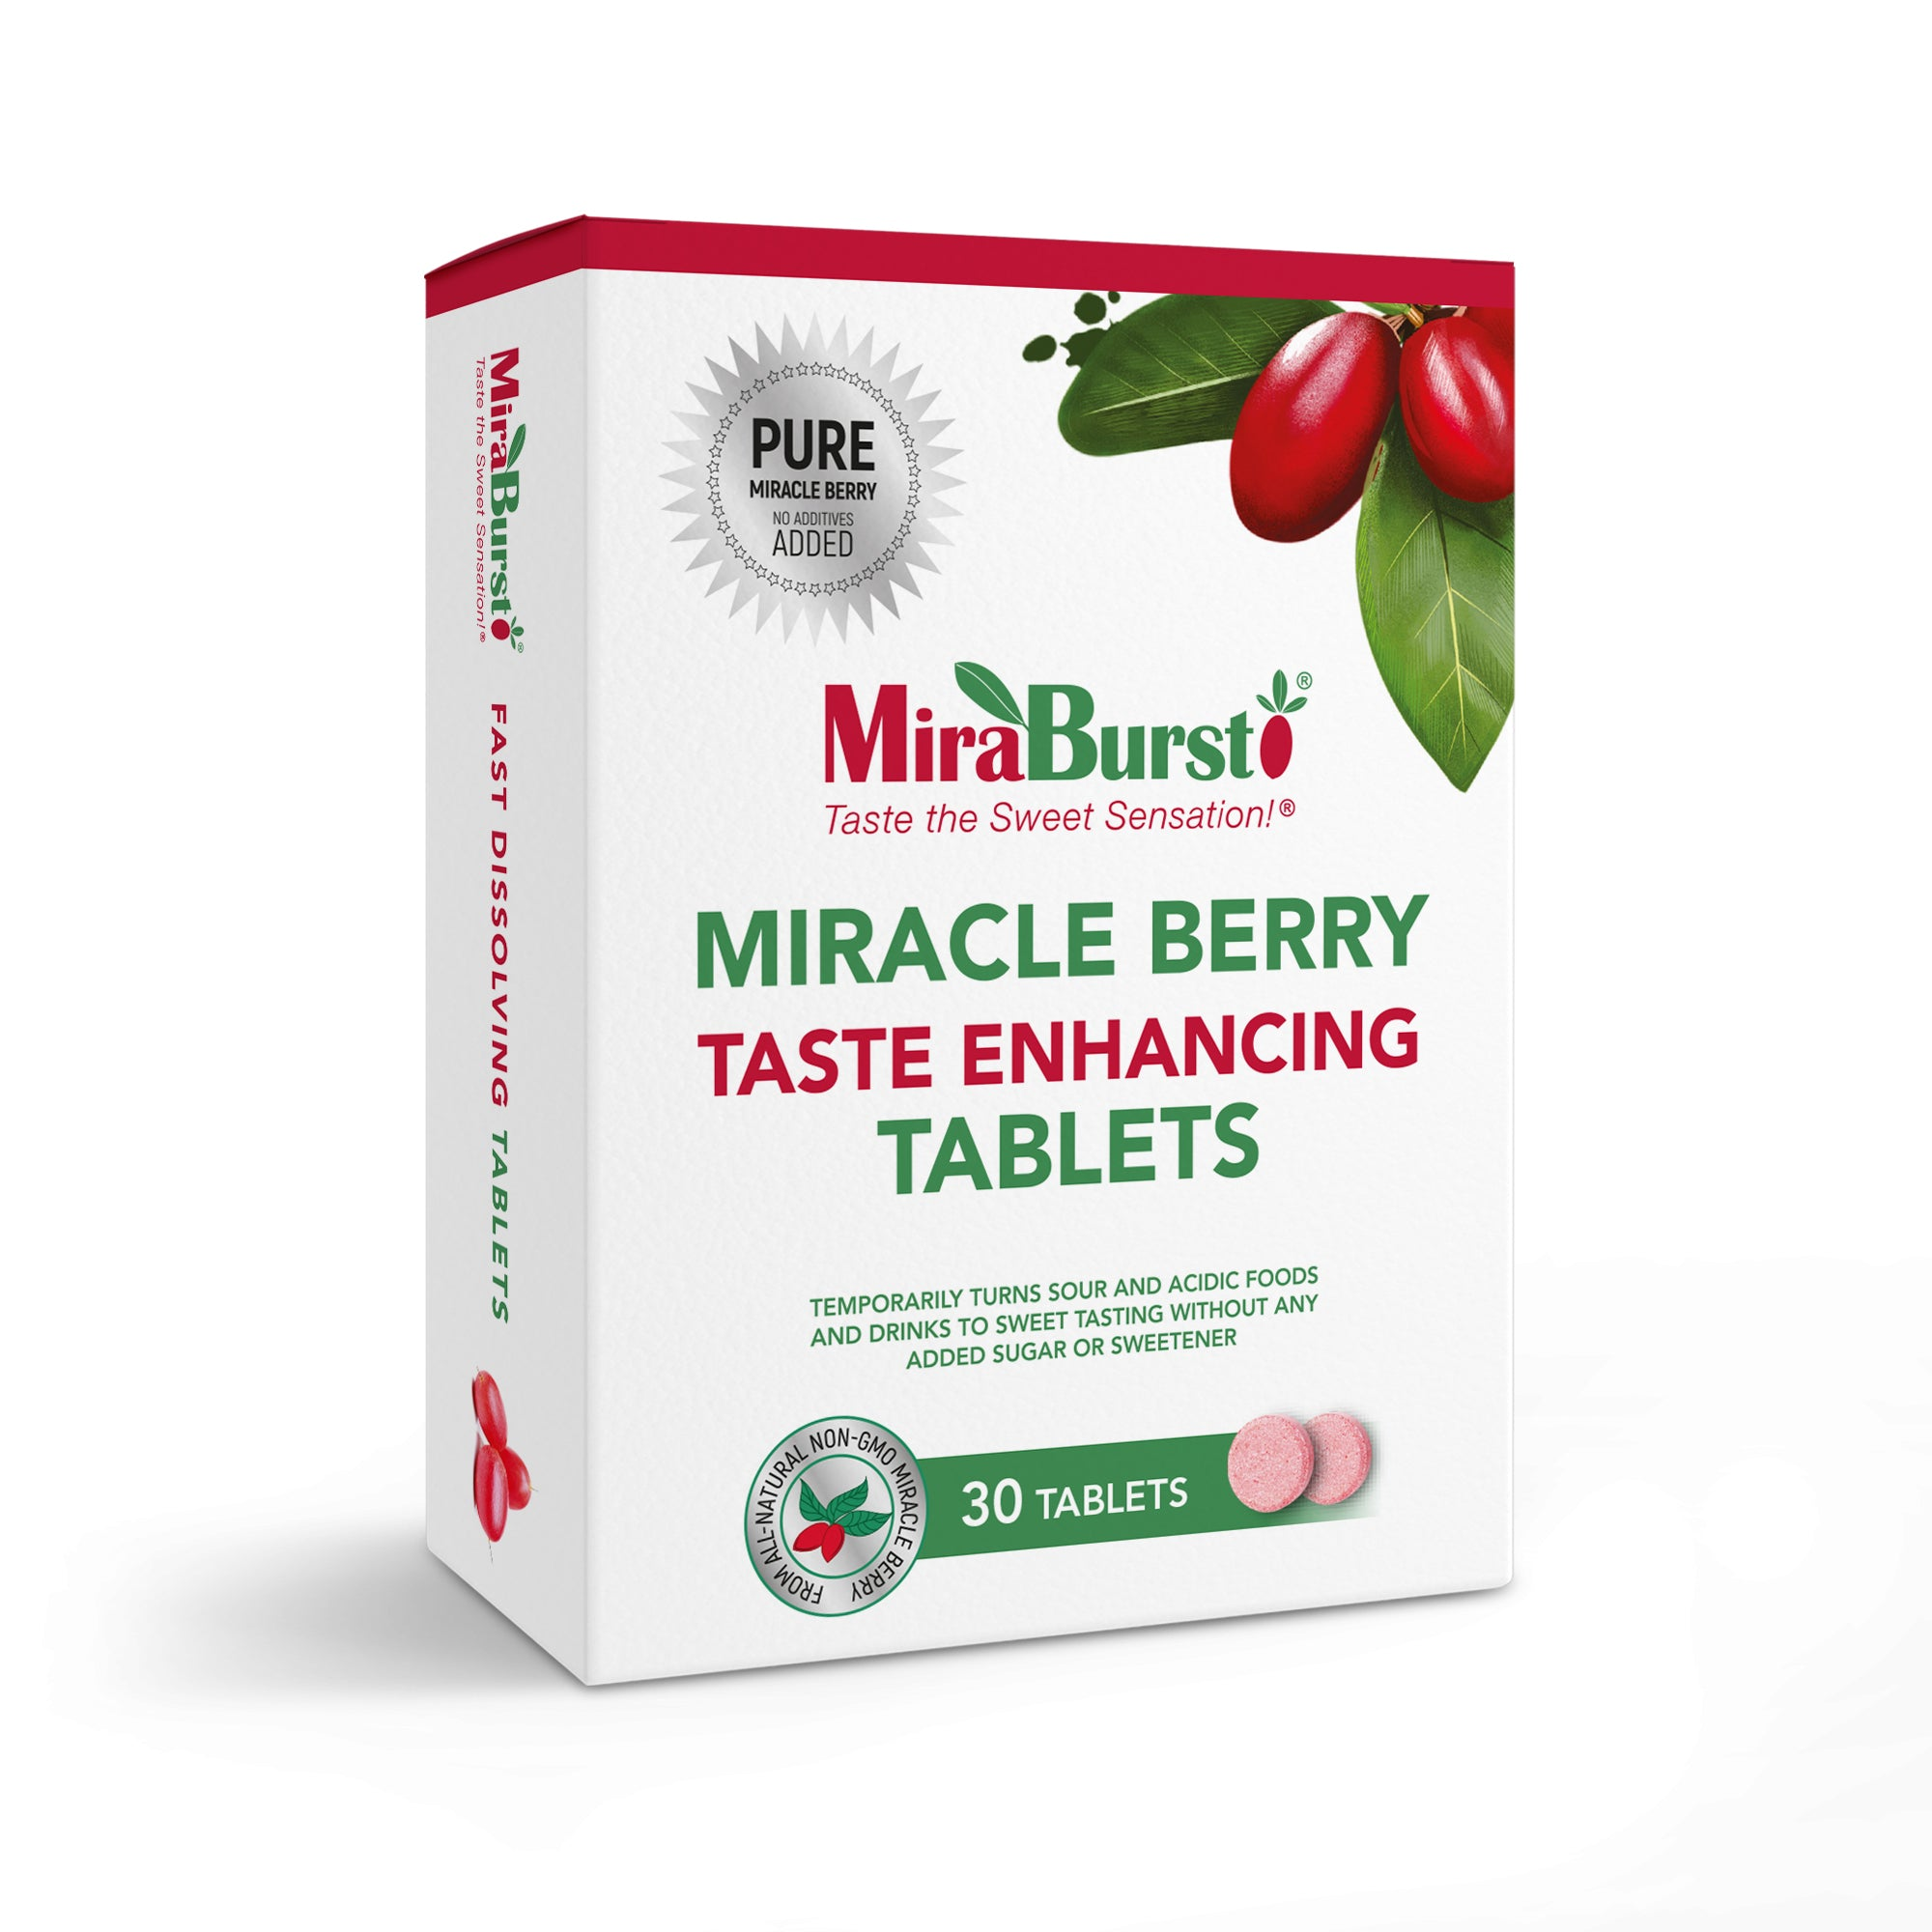 MiraBurst® Taste Enhancing Tablets 30 pack